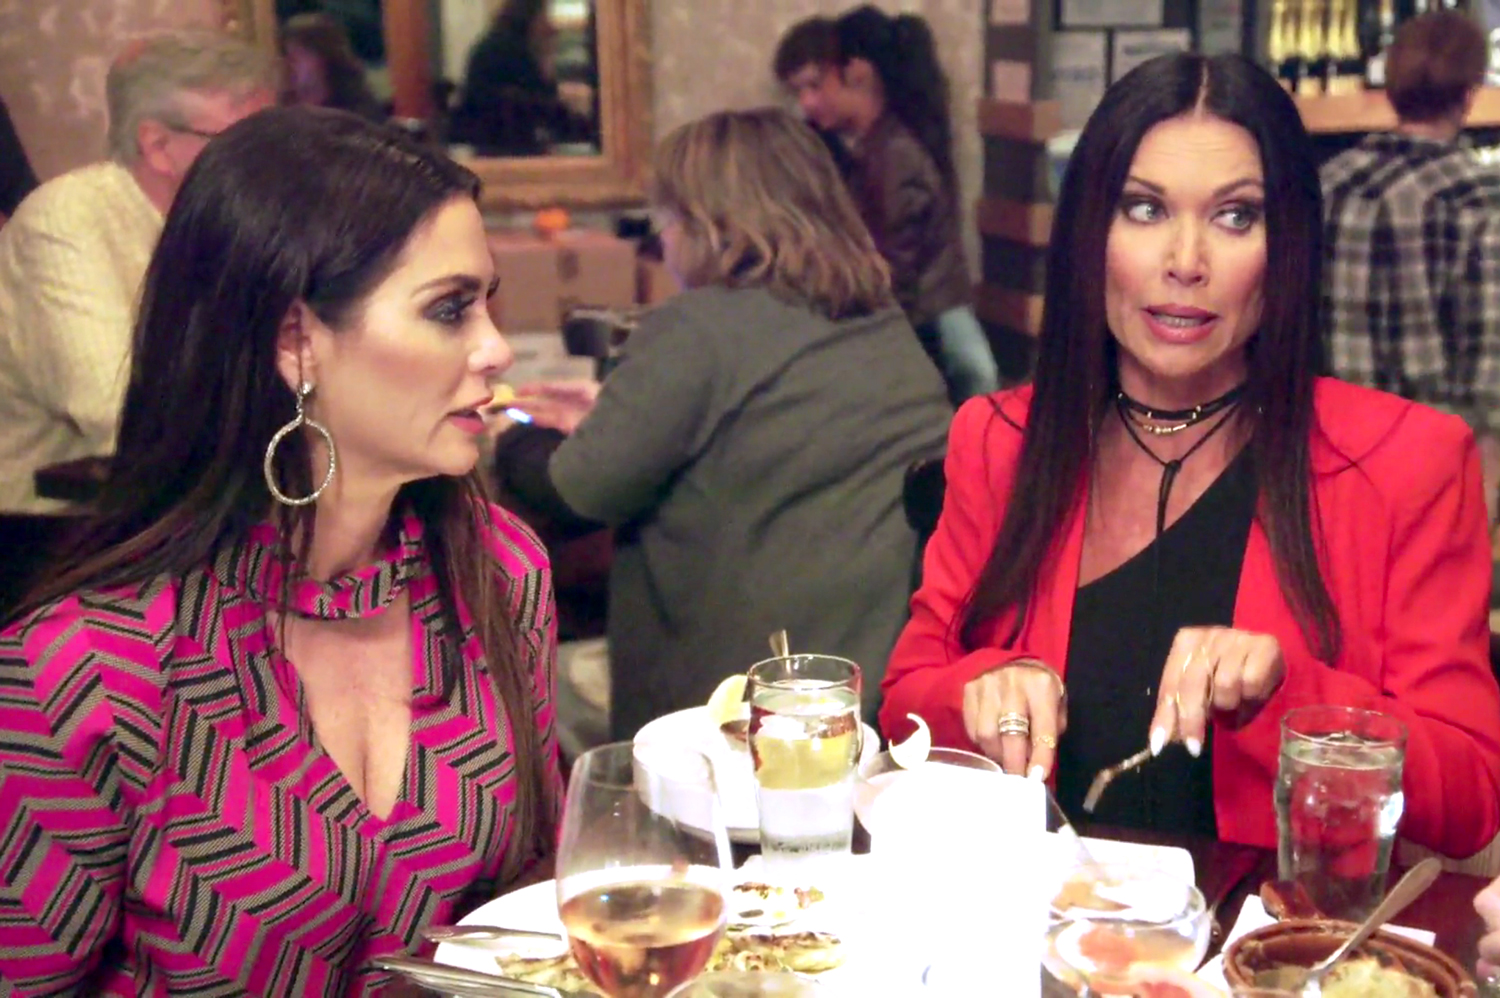 D'Andra Simmons, Leeanne Locken in The Real Housewives of Dallas